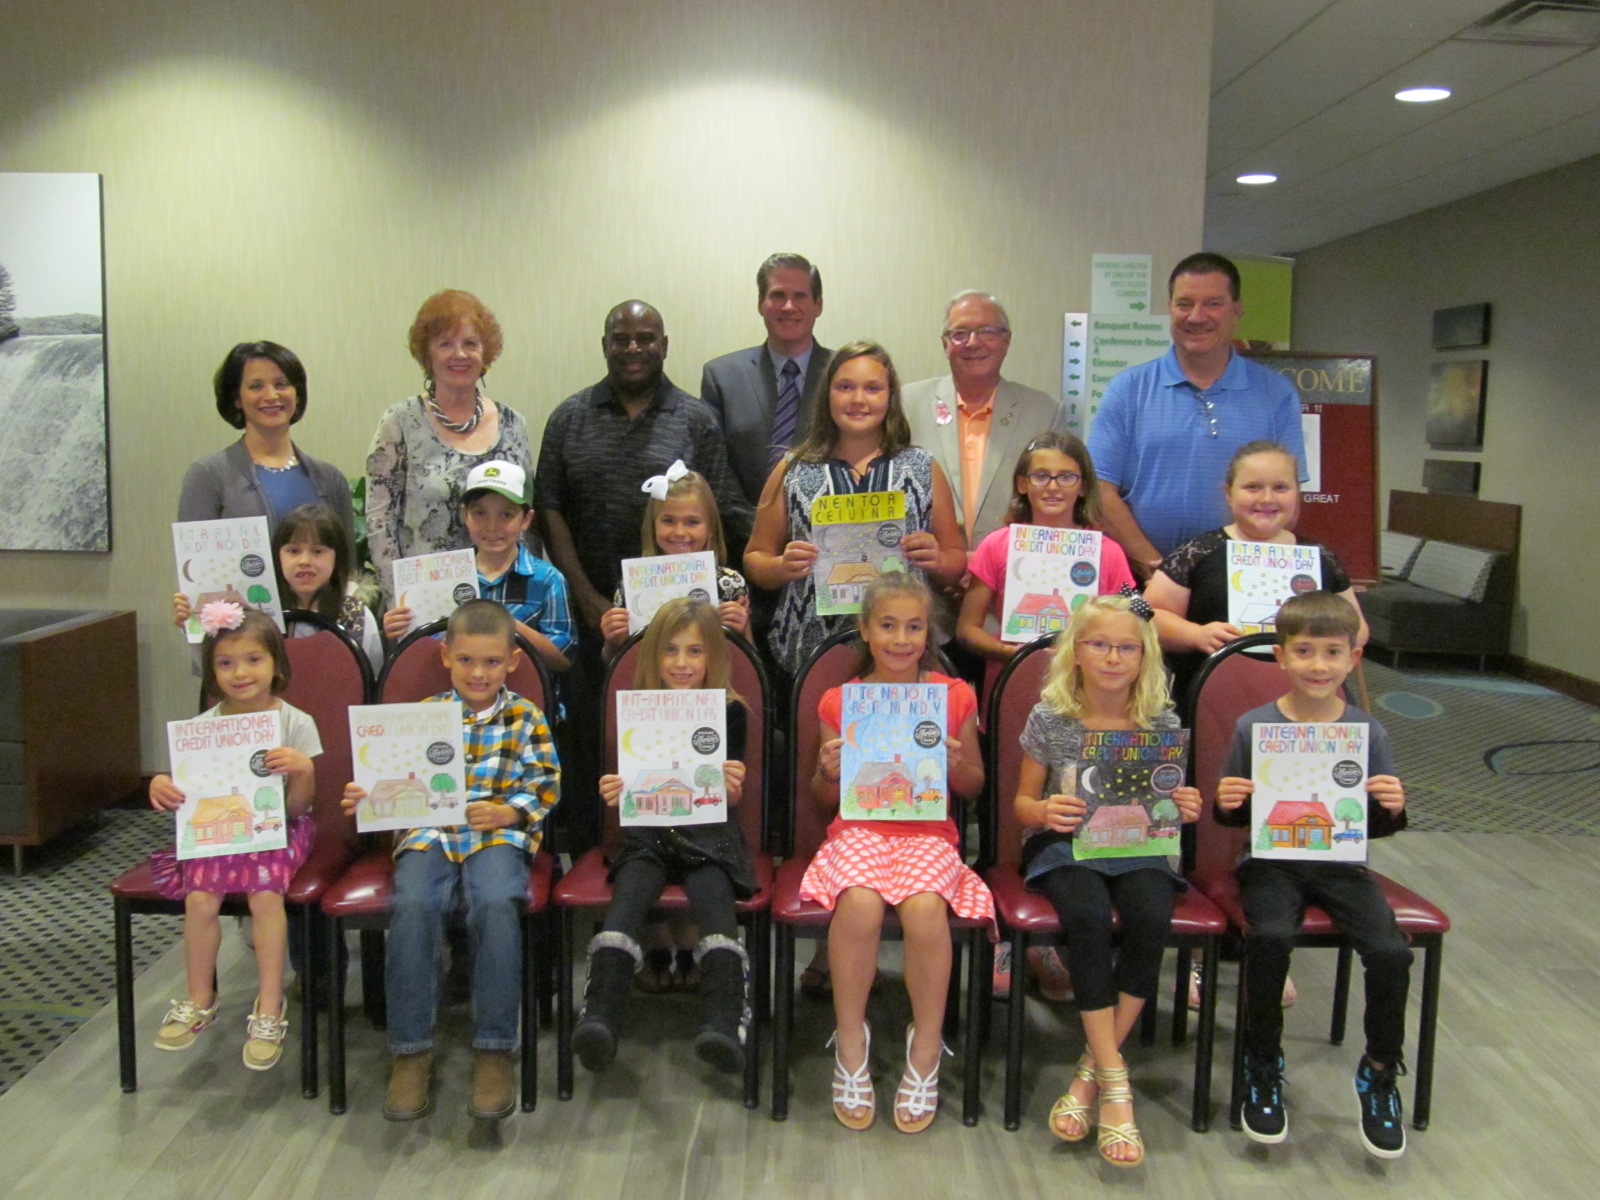 Credit unions hold coloring contests | News, Sports, Jobs - Weirton Daily Times